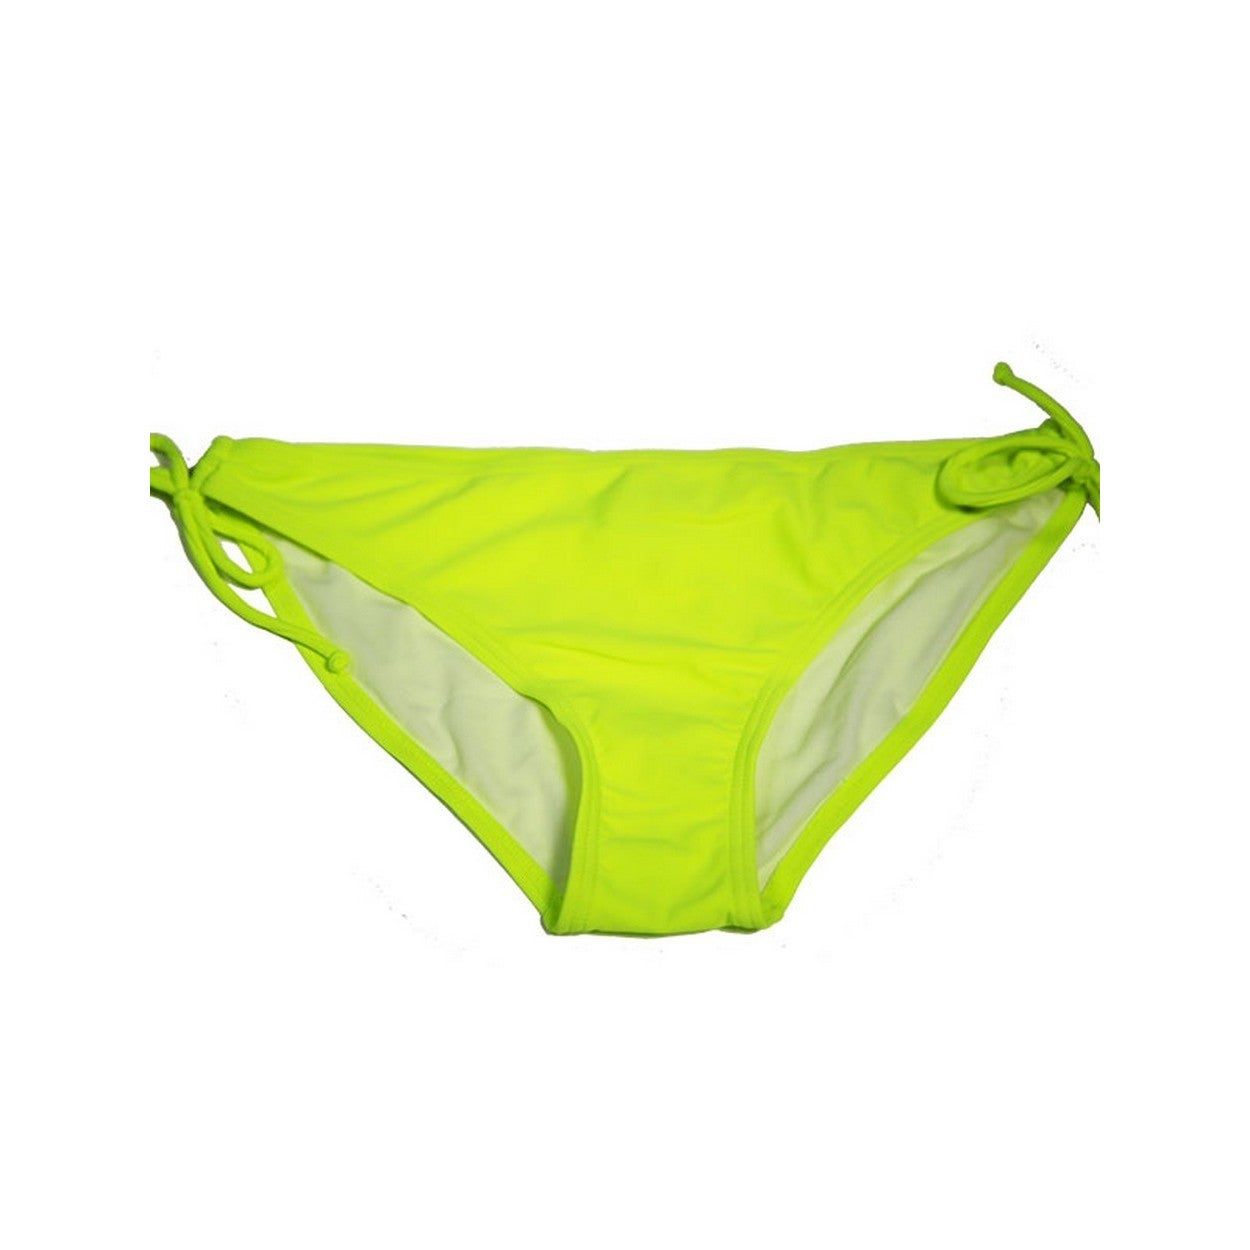 The Key Hole Bottom 'Neon Yellow' Yellow Lycra Bikini Bot...